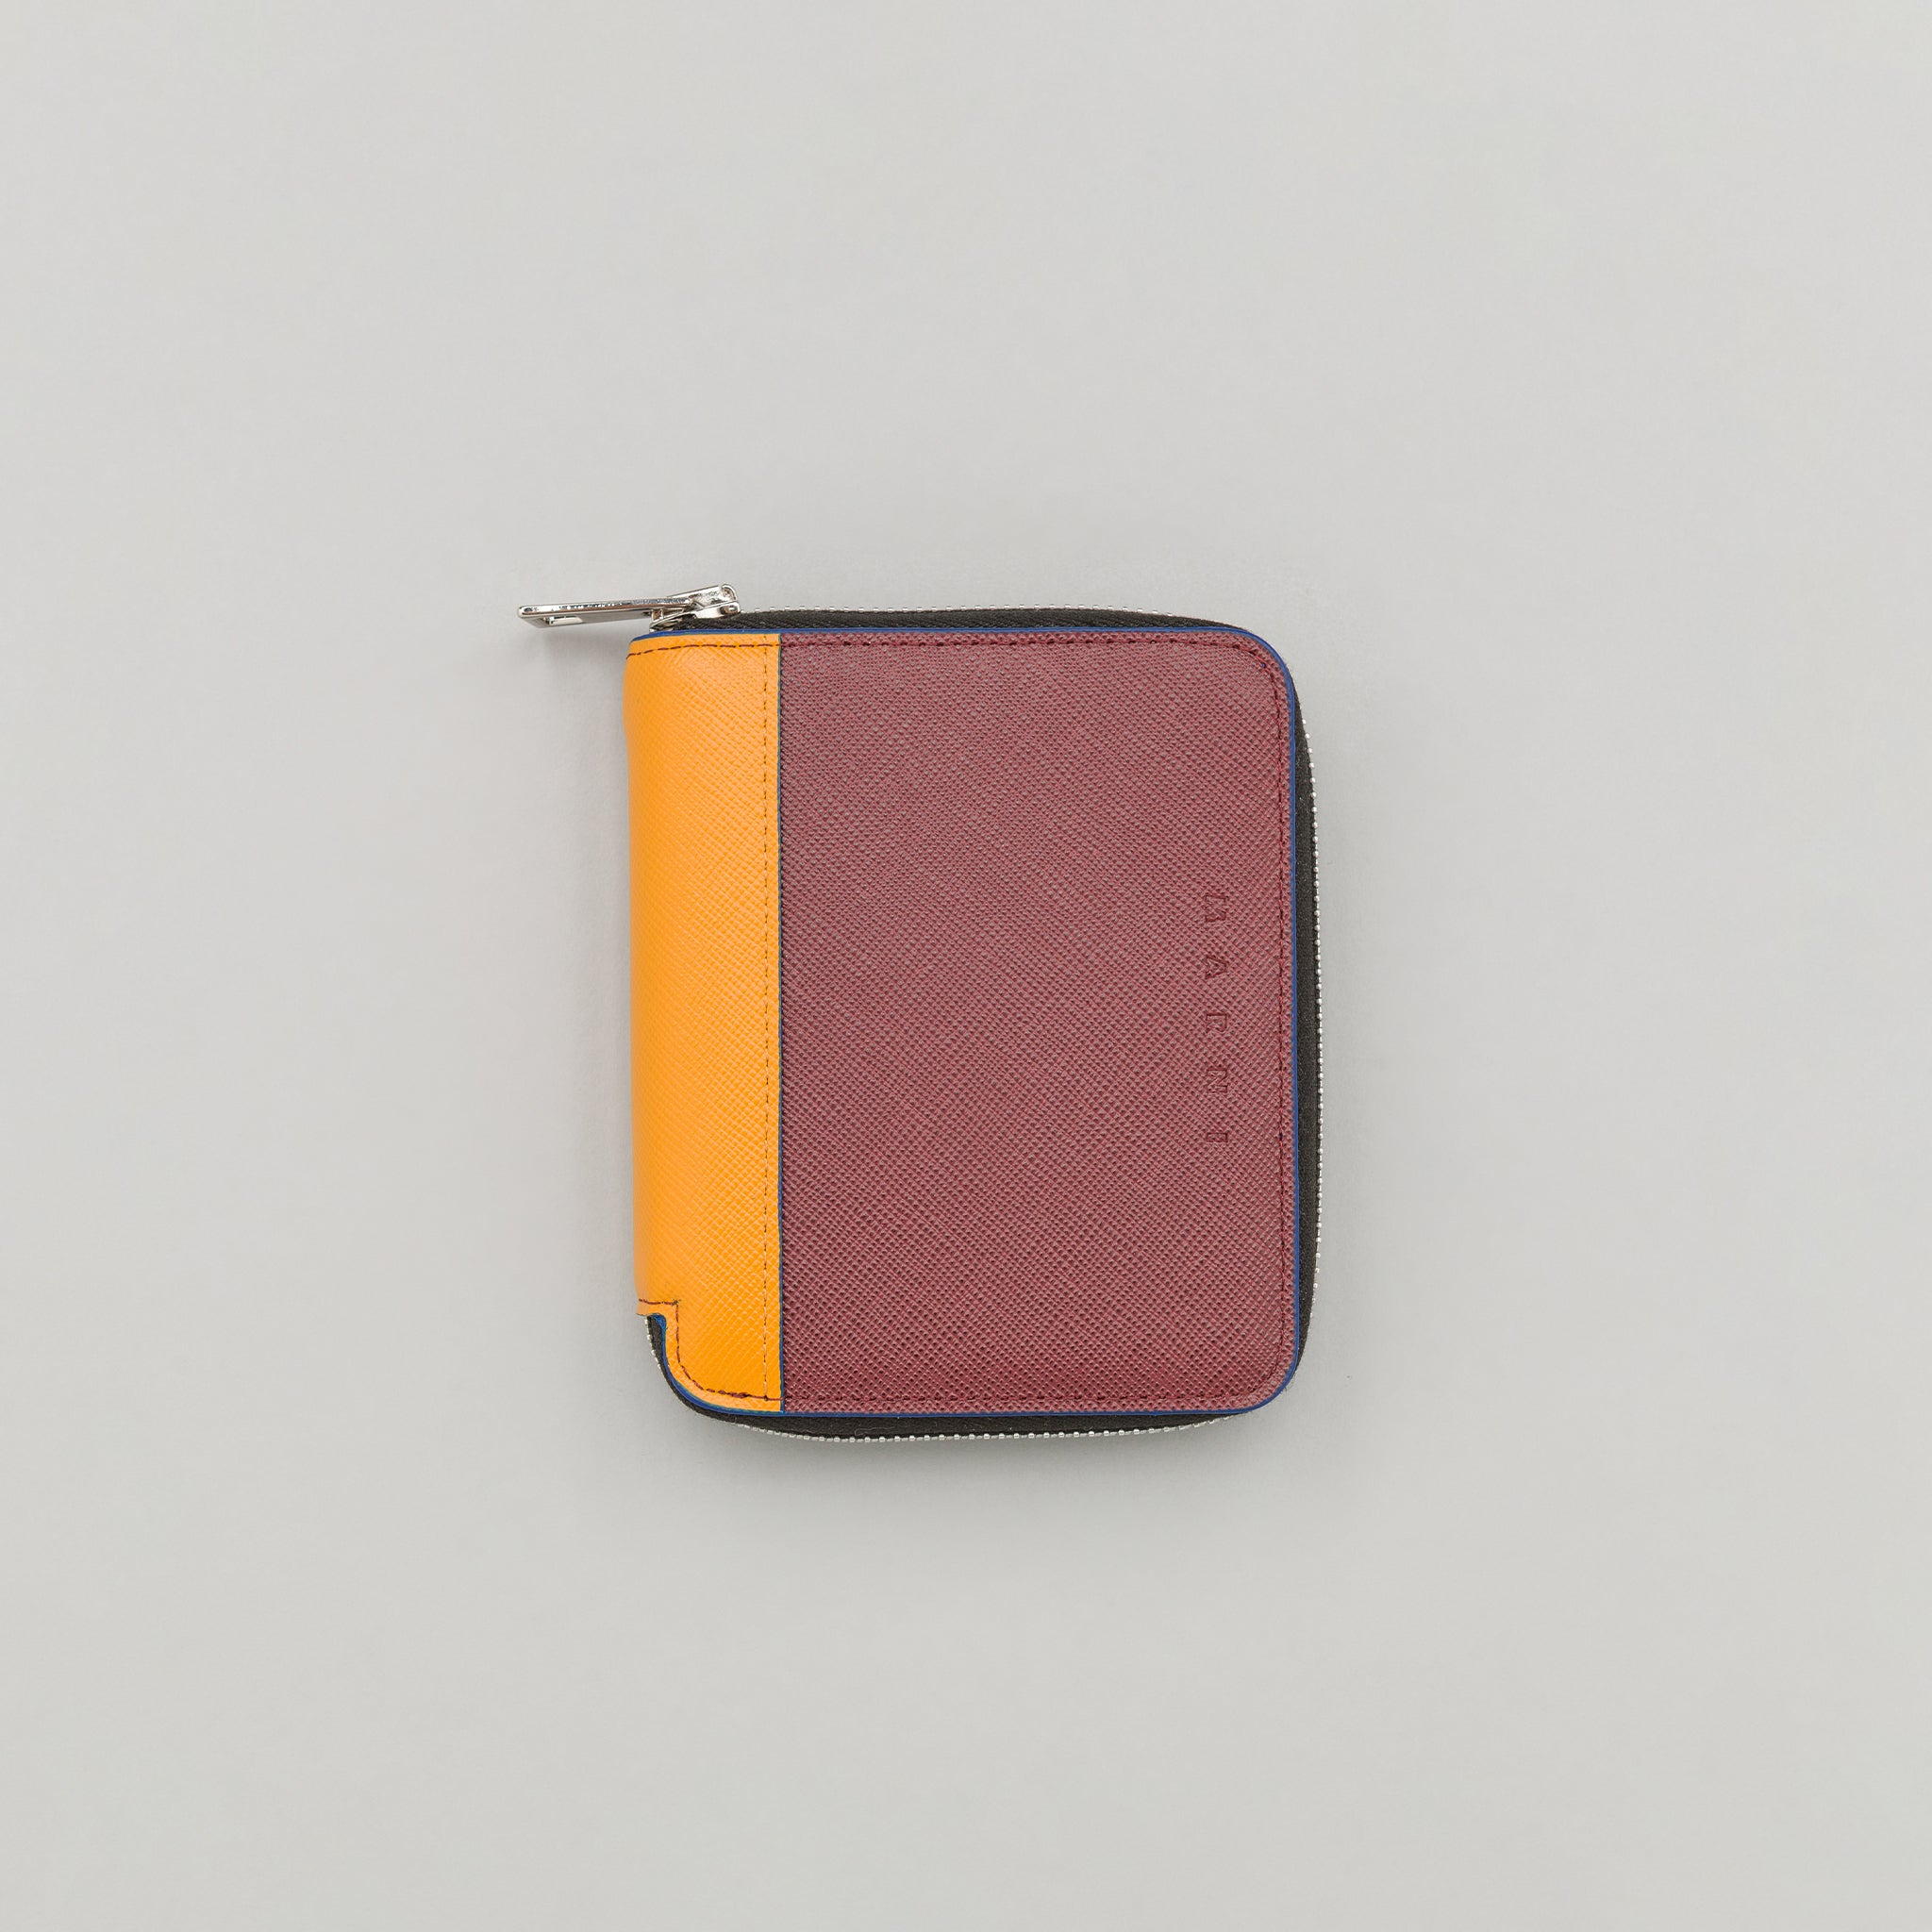 Zip Wallet in Mustard Yellow